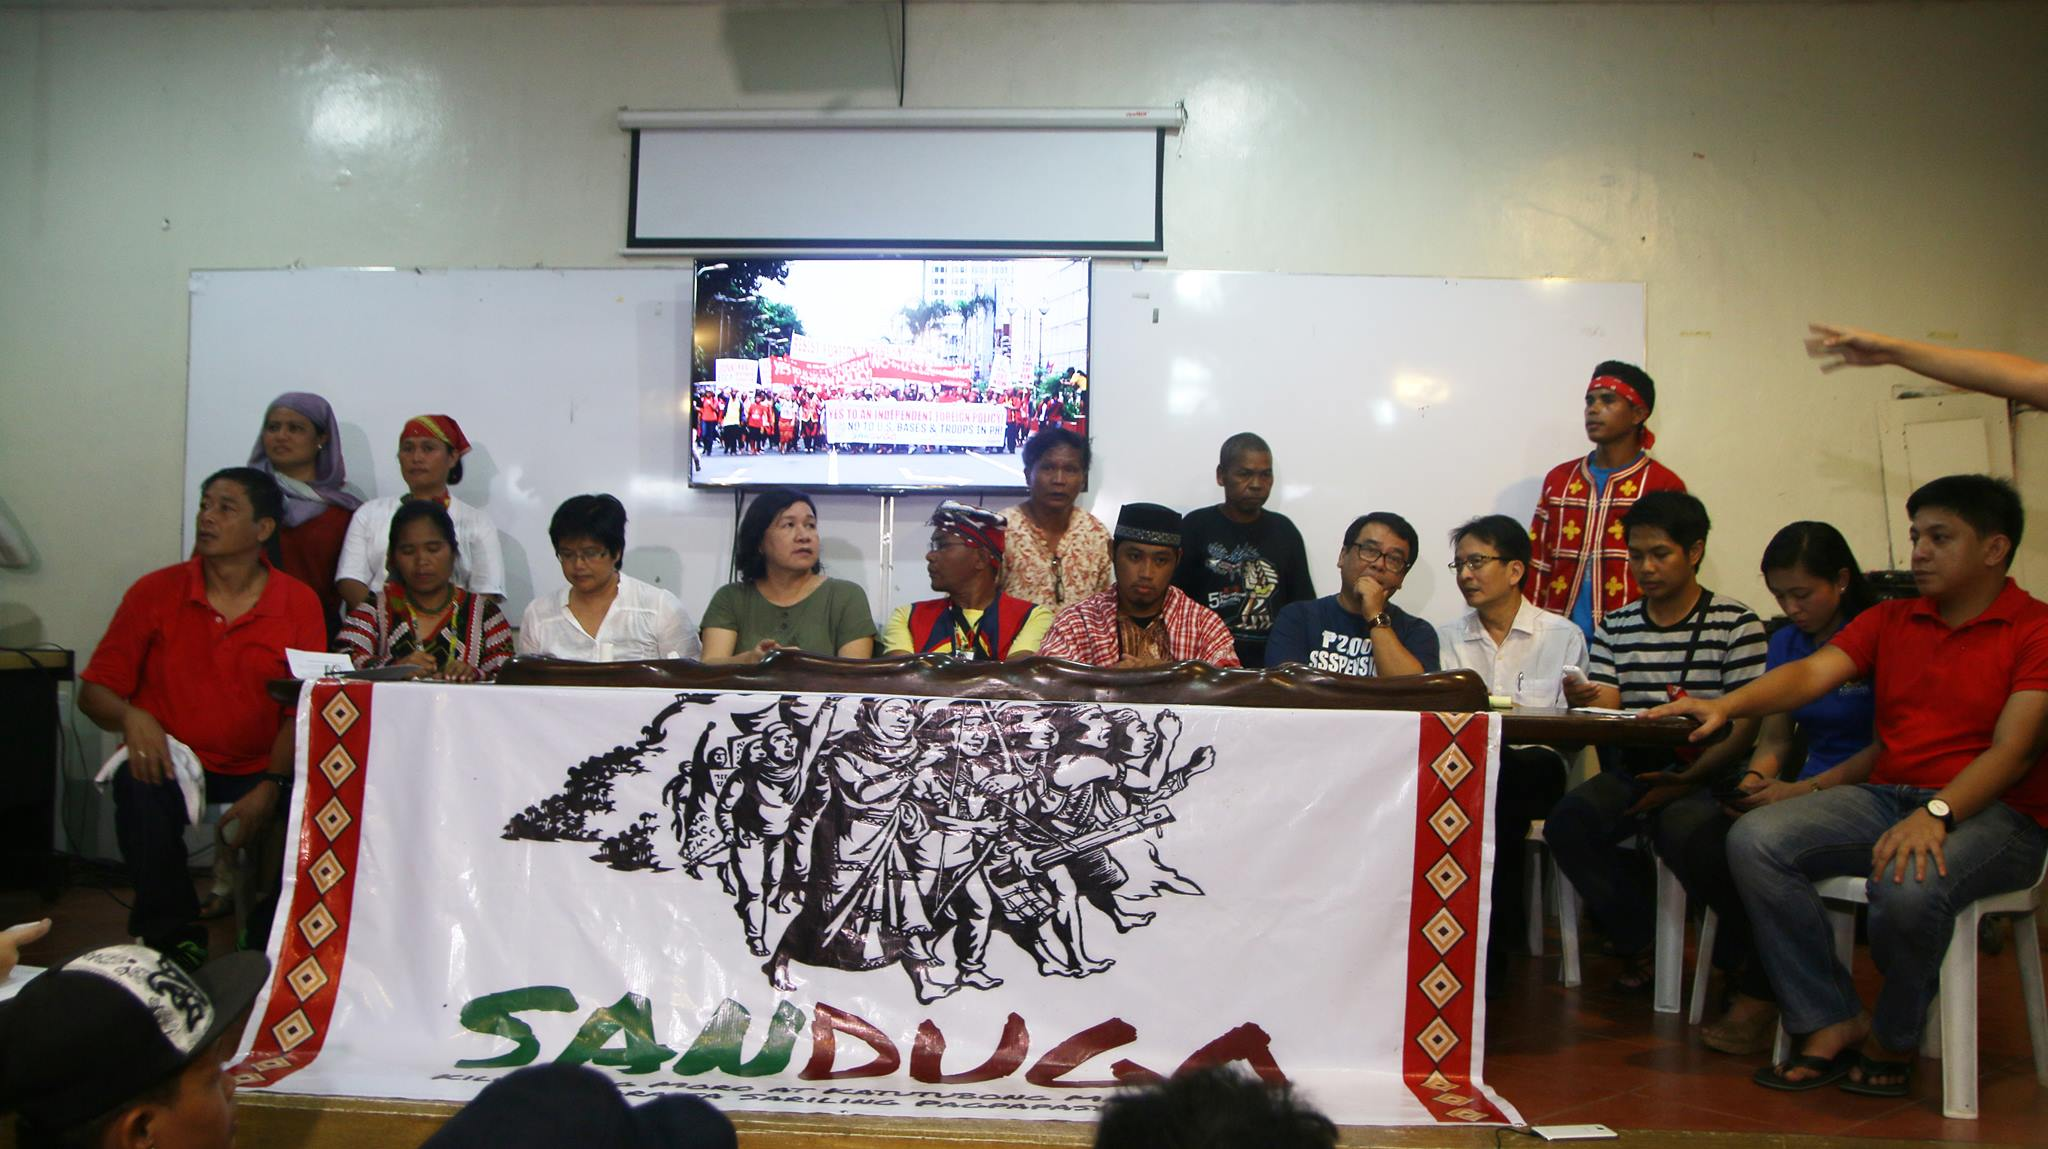 Sandugo convenors along with sectoral leaders and advocates, at a press conference at the College of Fine Arts in UP Diliman on Oct. 20. (Photo by Divine Miranda/Kodao Productions)